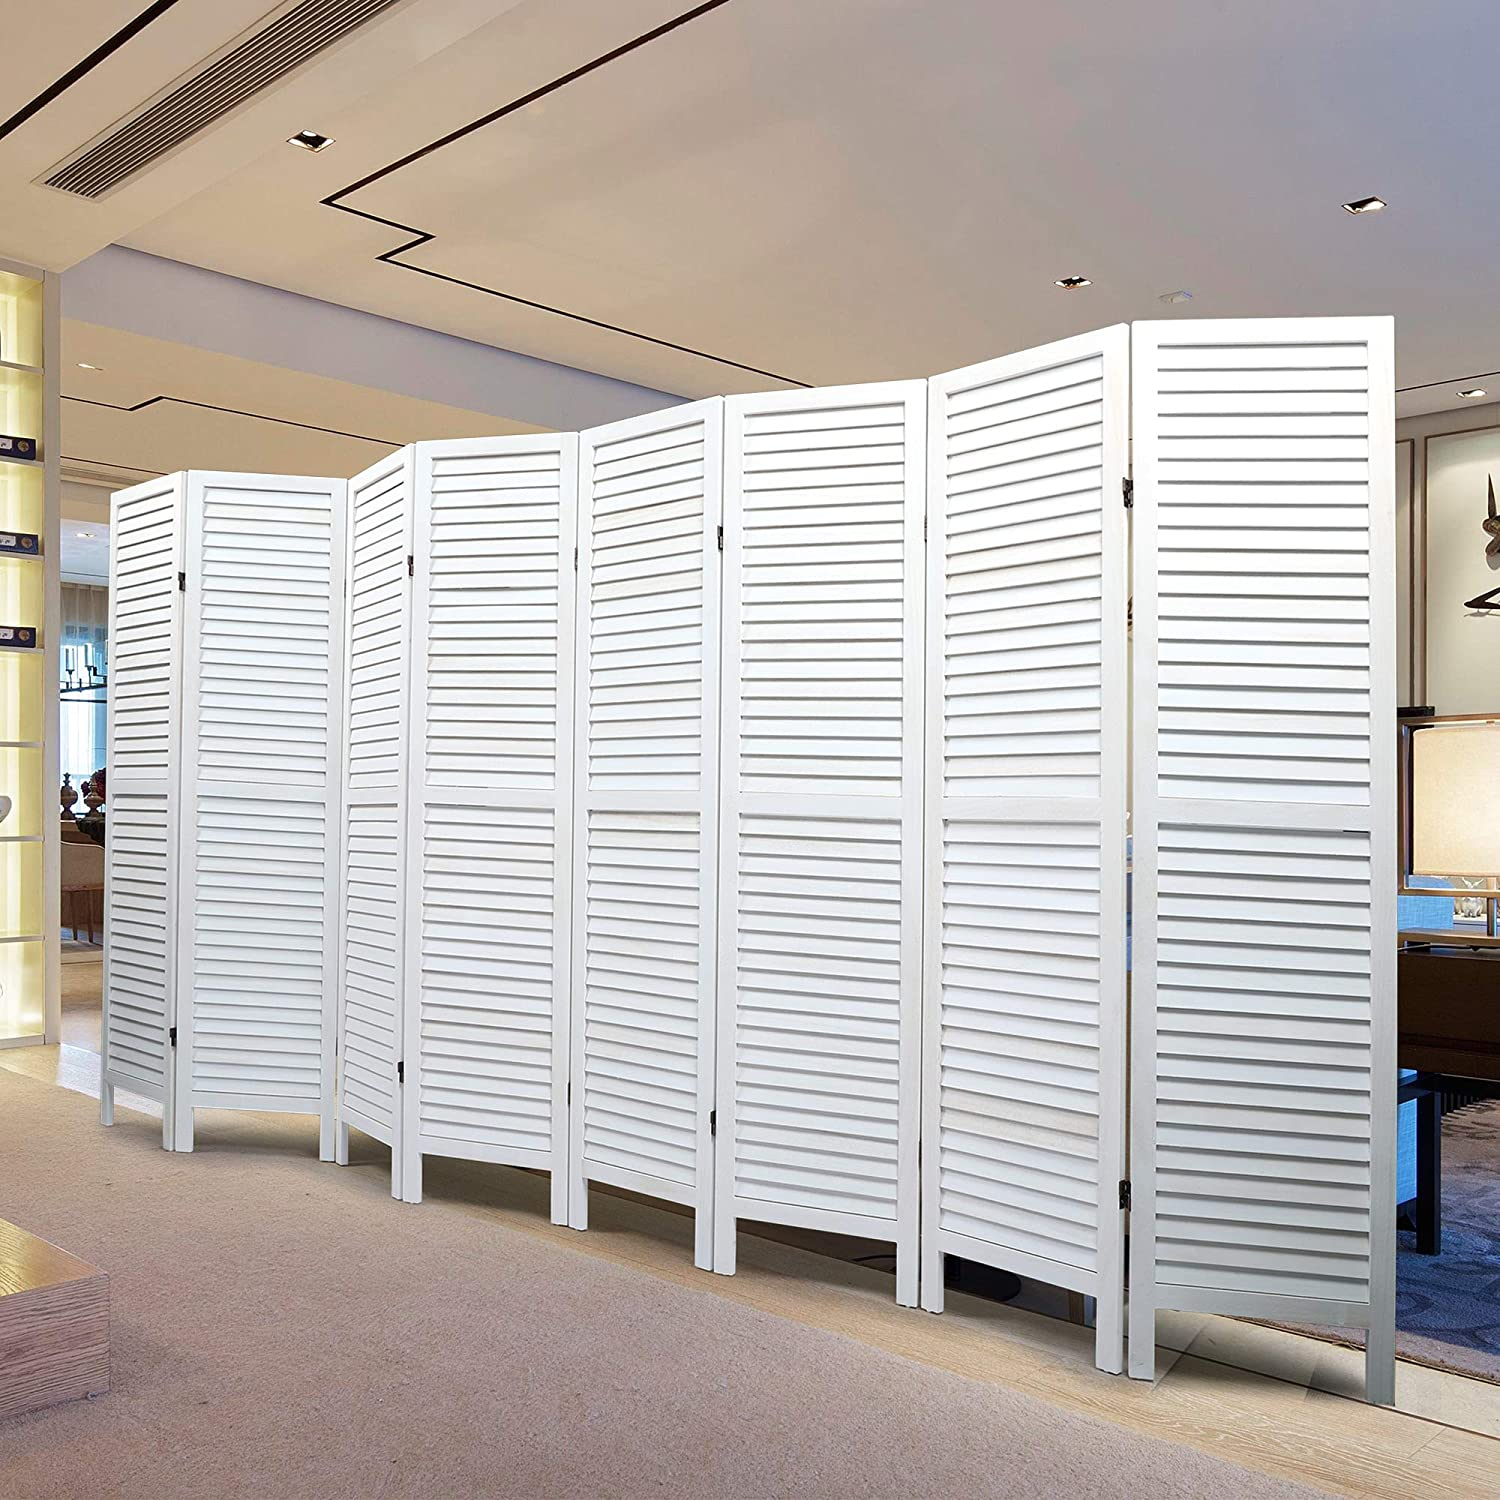 Free shipping JAXPETY 8 Panel Wood Louvered Room Tall Divider Omaha Mall Oriental Ft 5.6